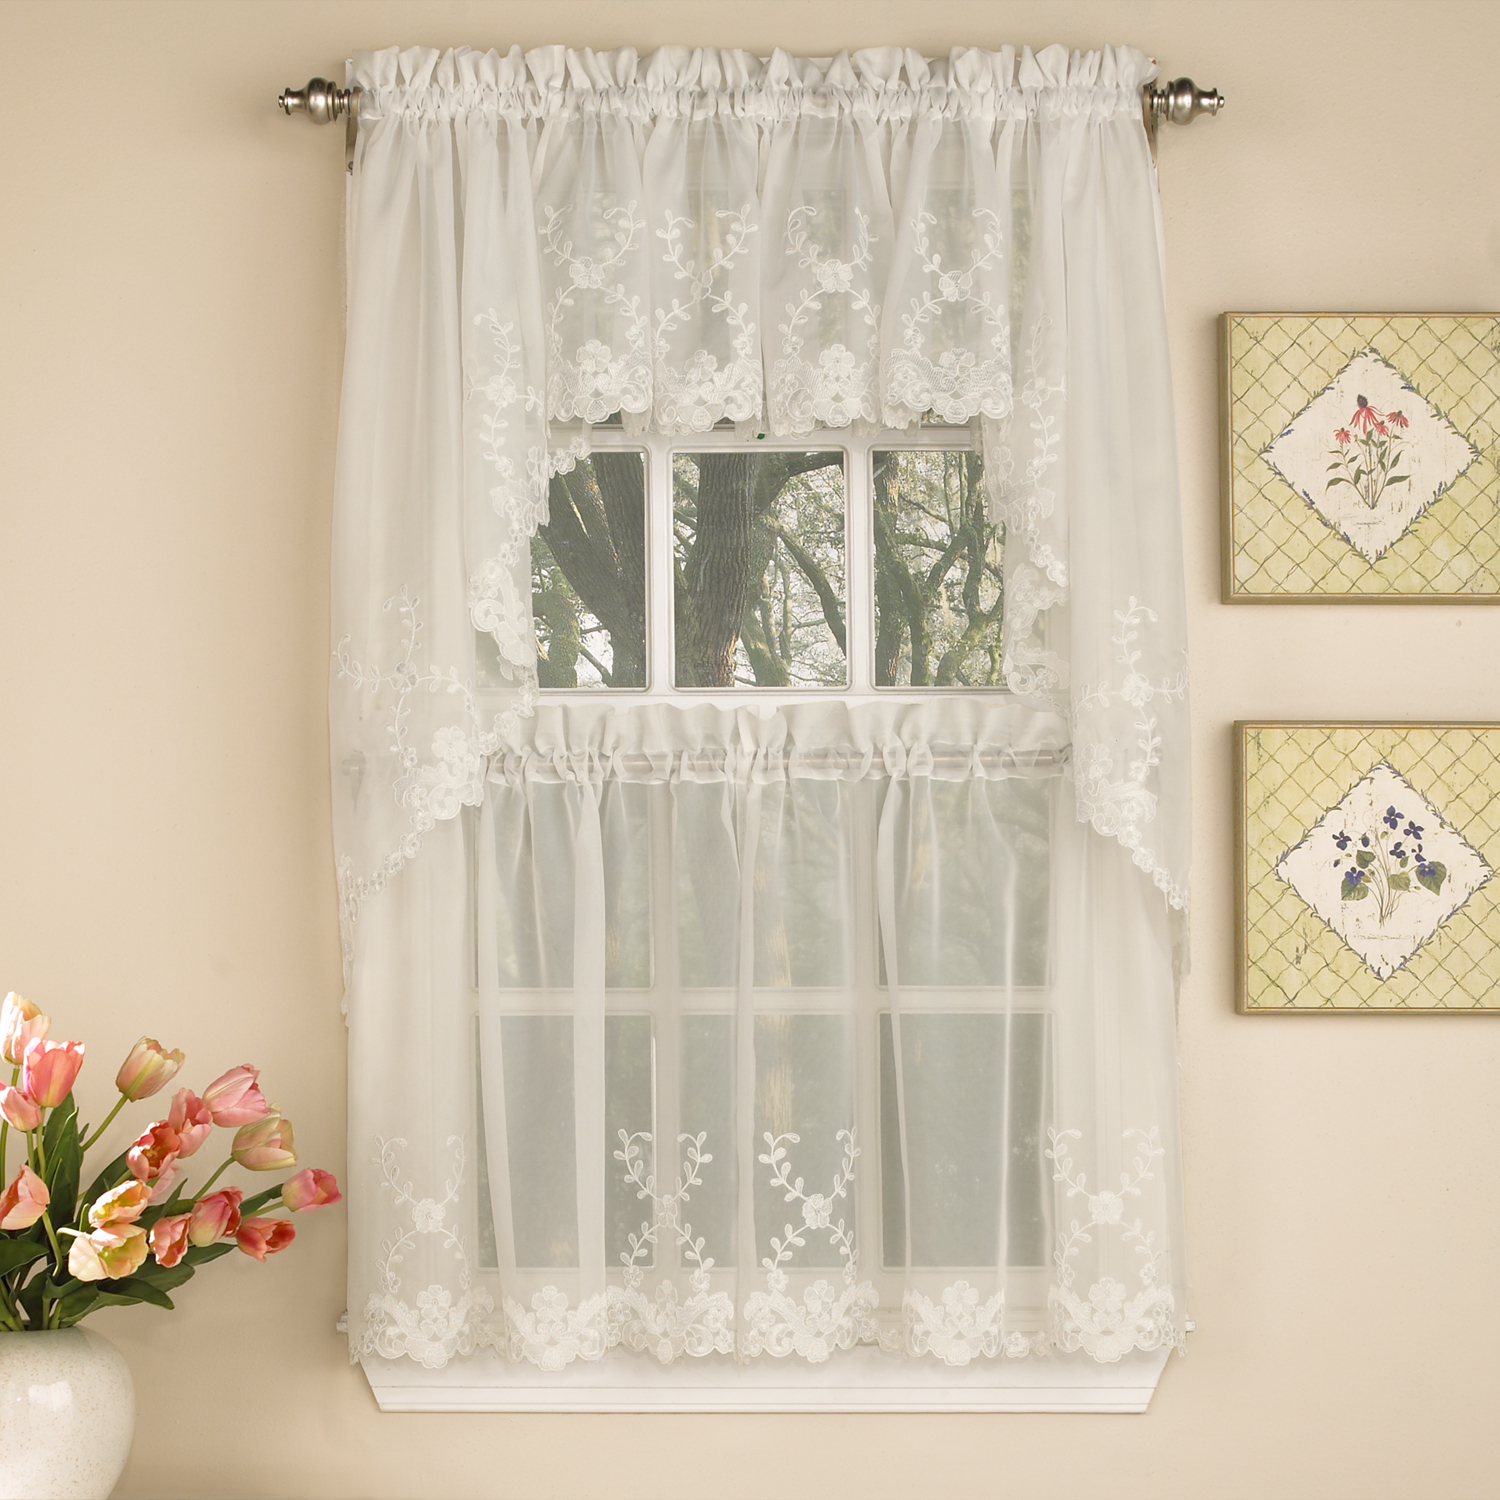 Semi Sheer Rod Pocket Kitchen Curtain Valance And Tiers Sets Pertaining To Latest Details About Laurel Leaf Sheer Voile Embroidered Ivory Kitchen Curtains Tier, Valance Or Swag (View 20 of 20)